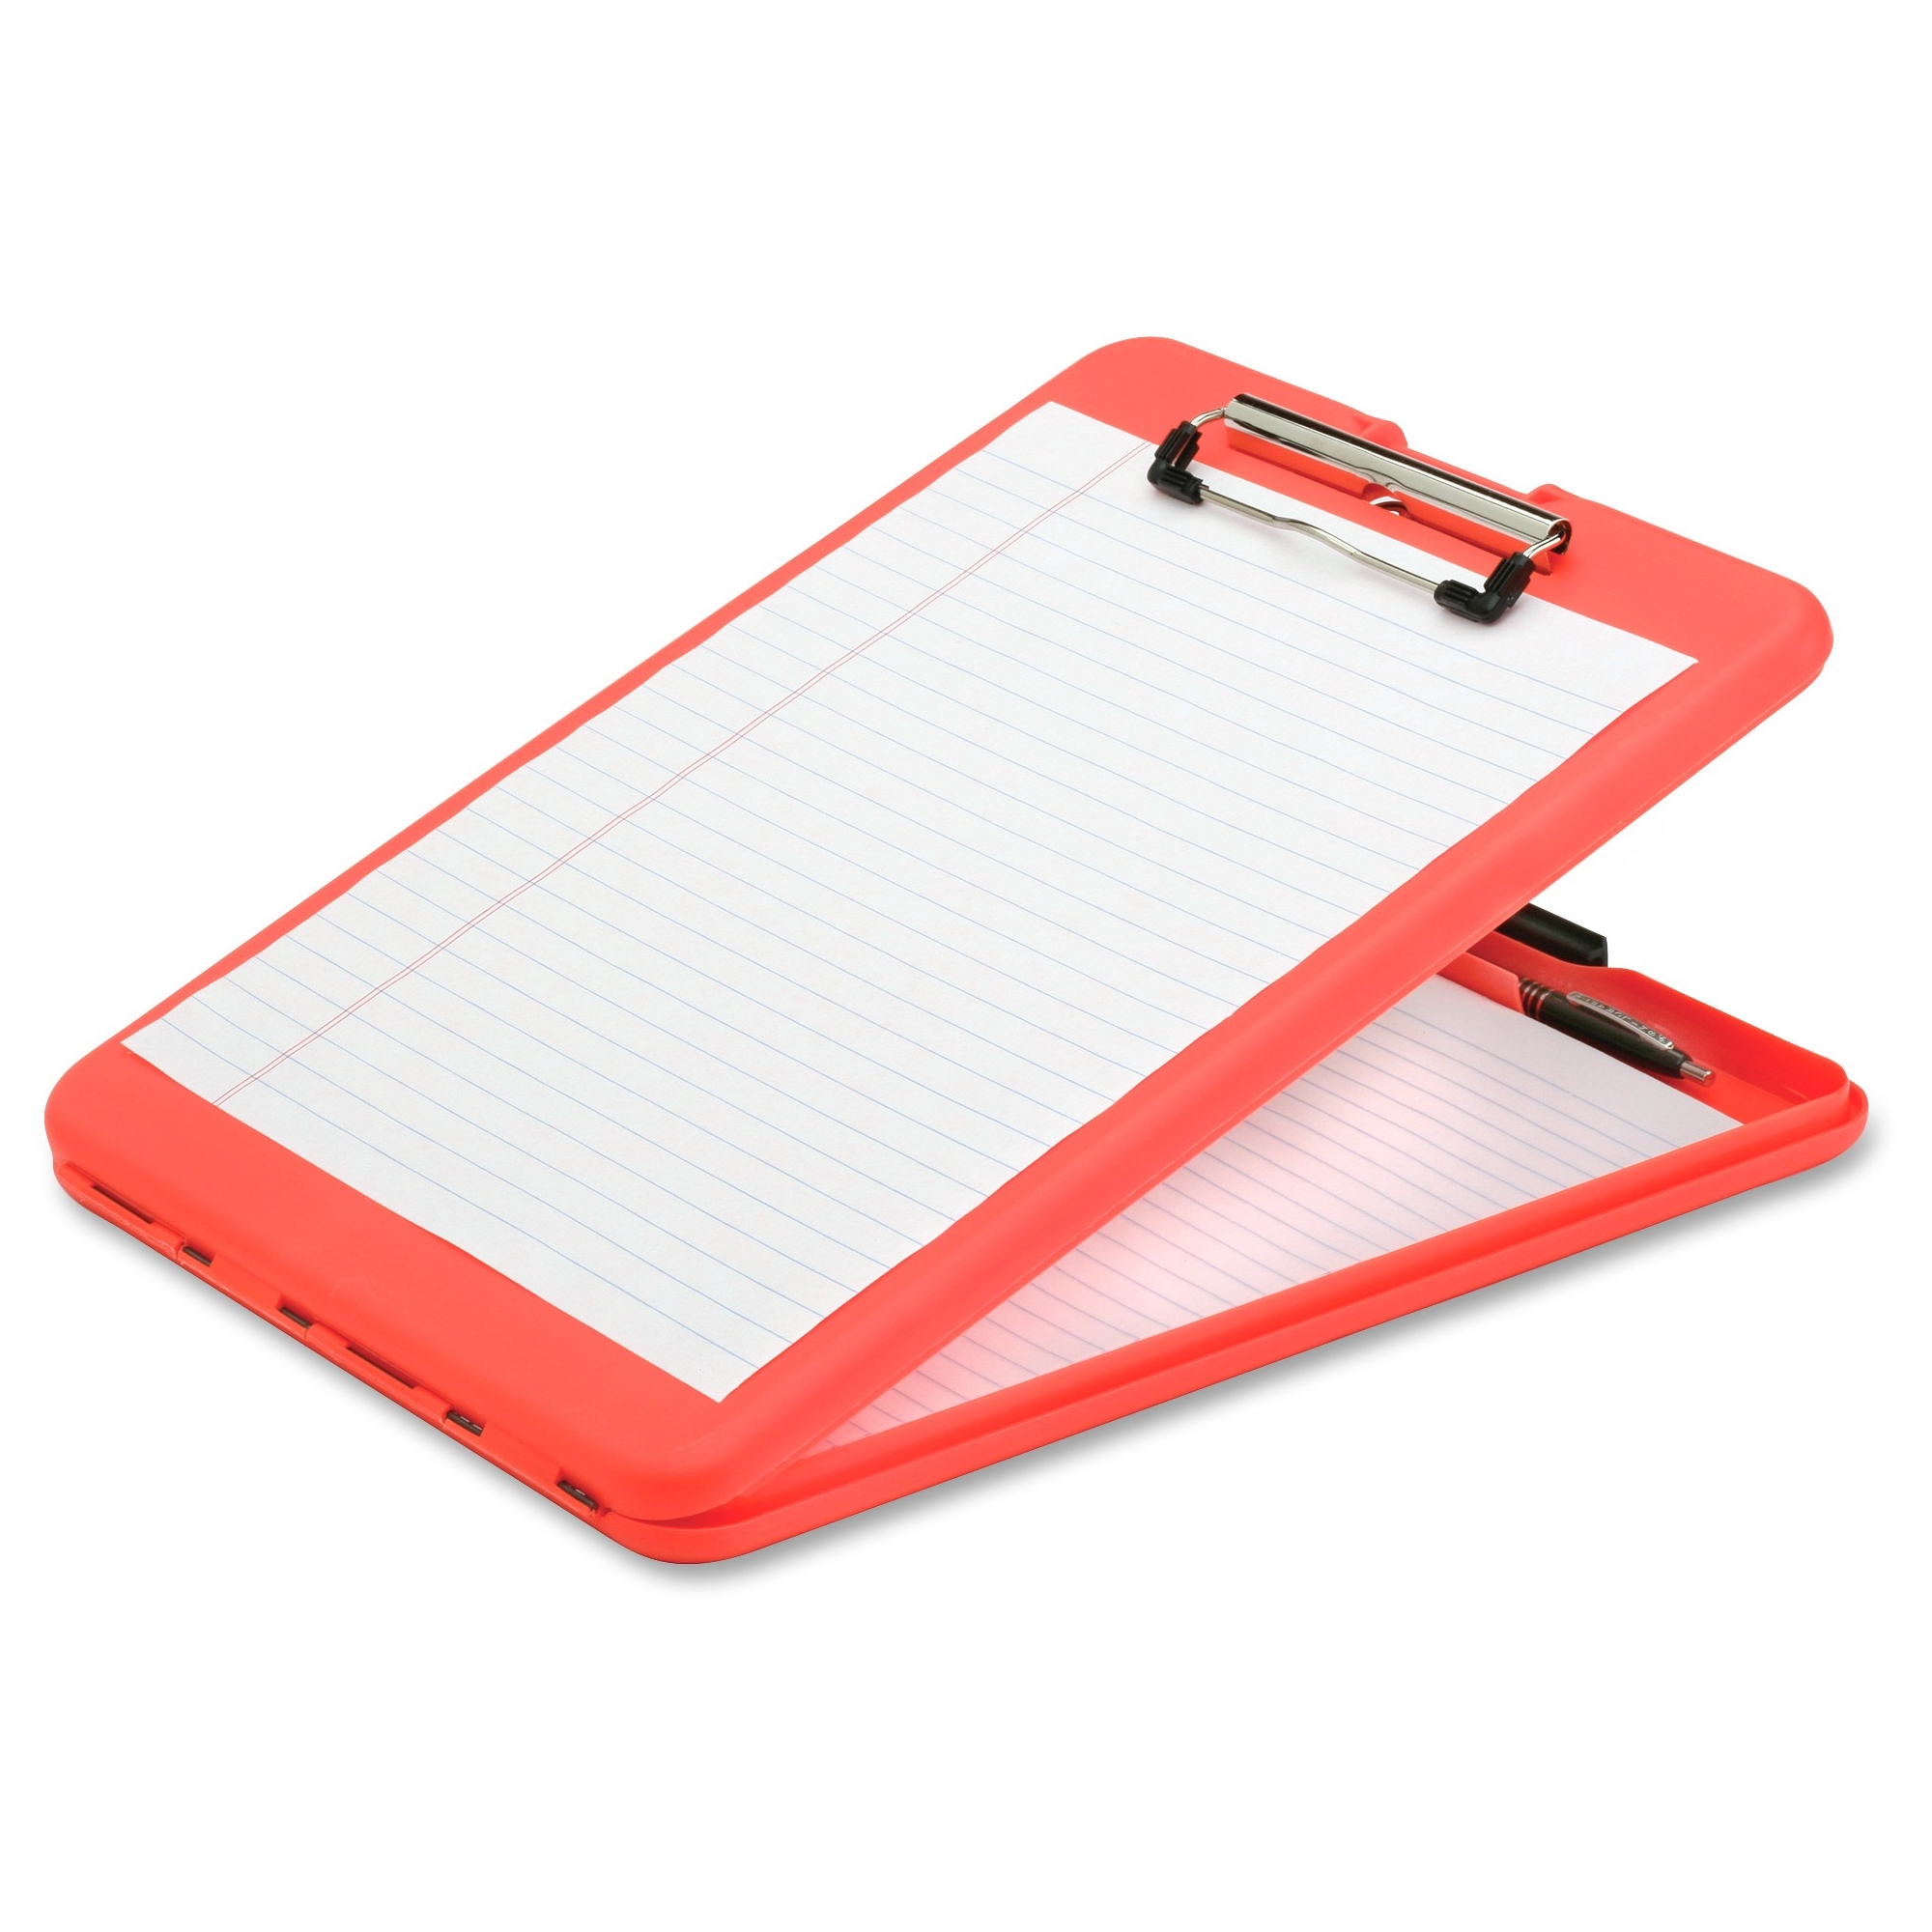 SKILCRAFT Portable Desktop Clipboard (nsn-6535888)